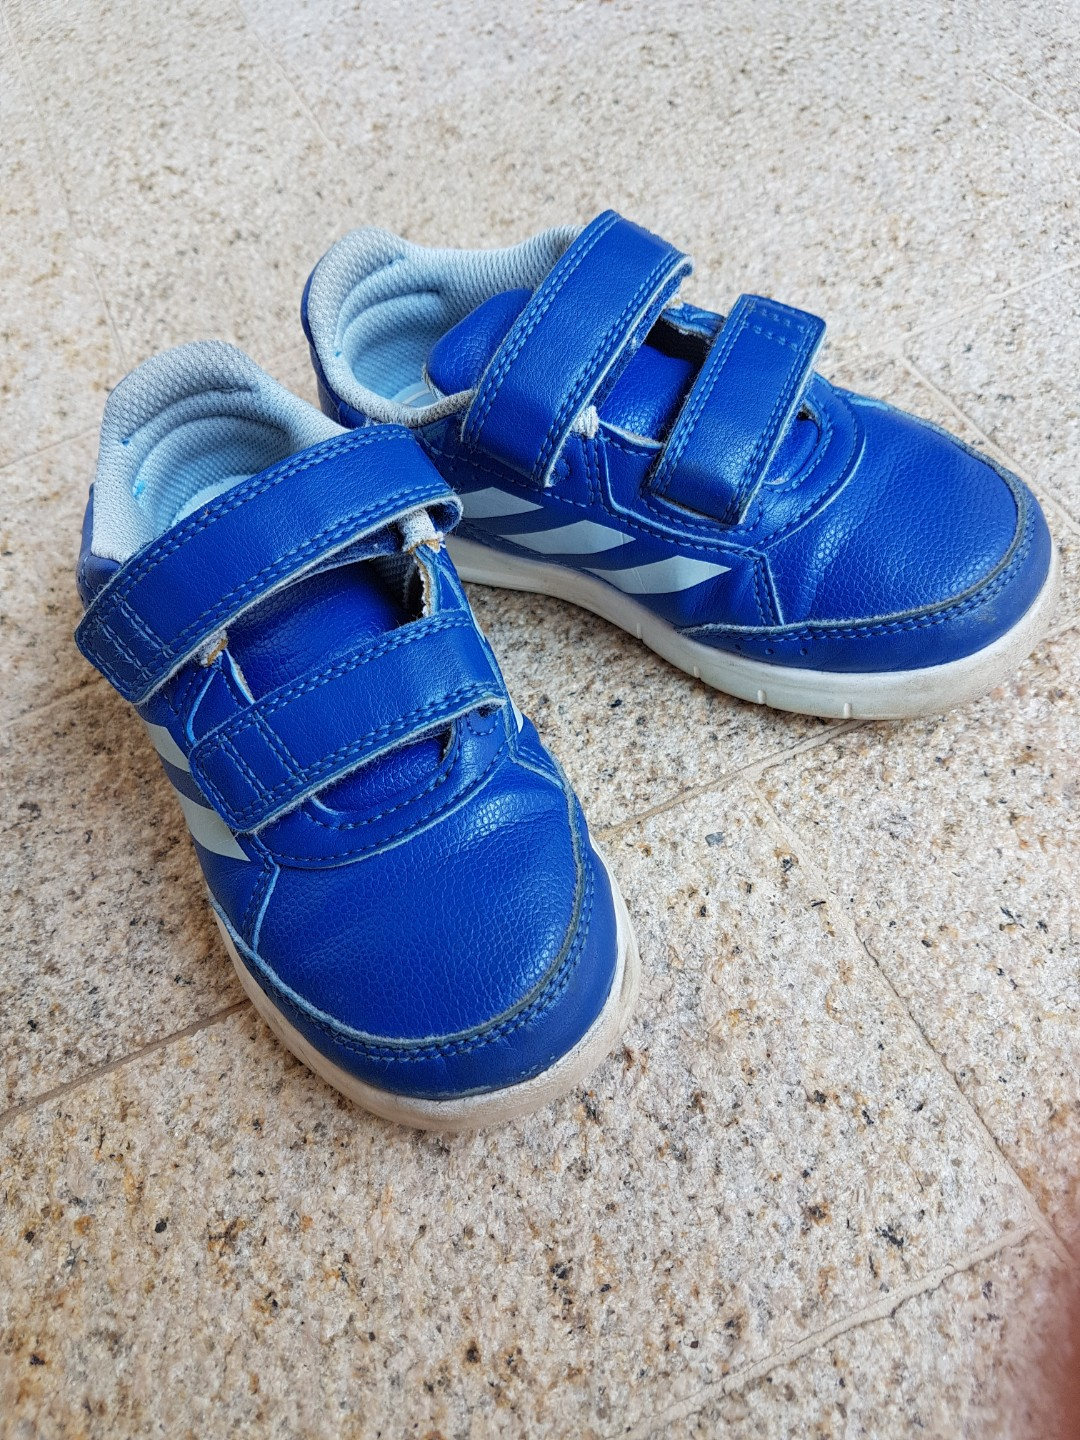 5a646a47674b86 Adidas Toddler Kids Running Shoes Eco Ortholite